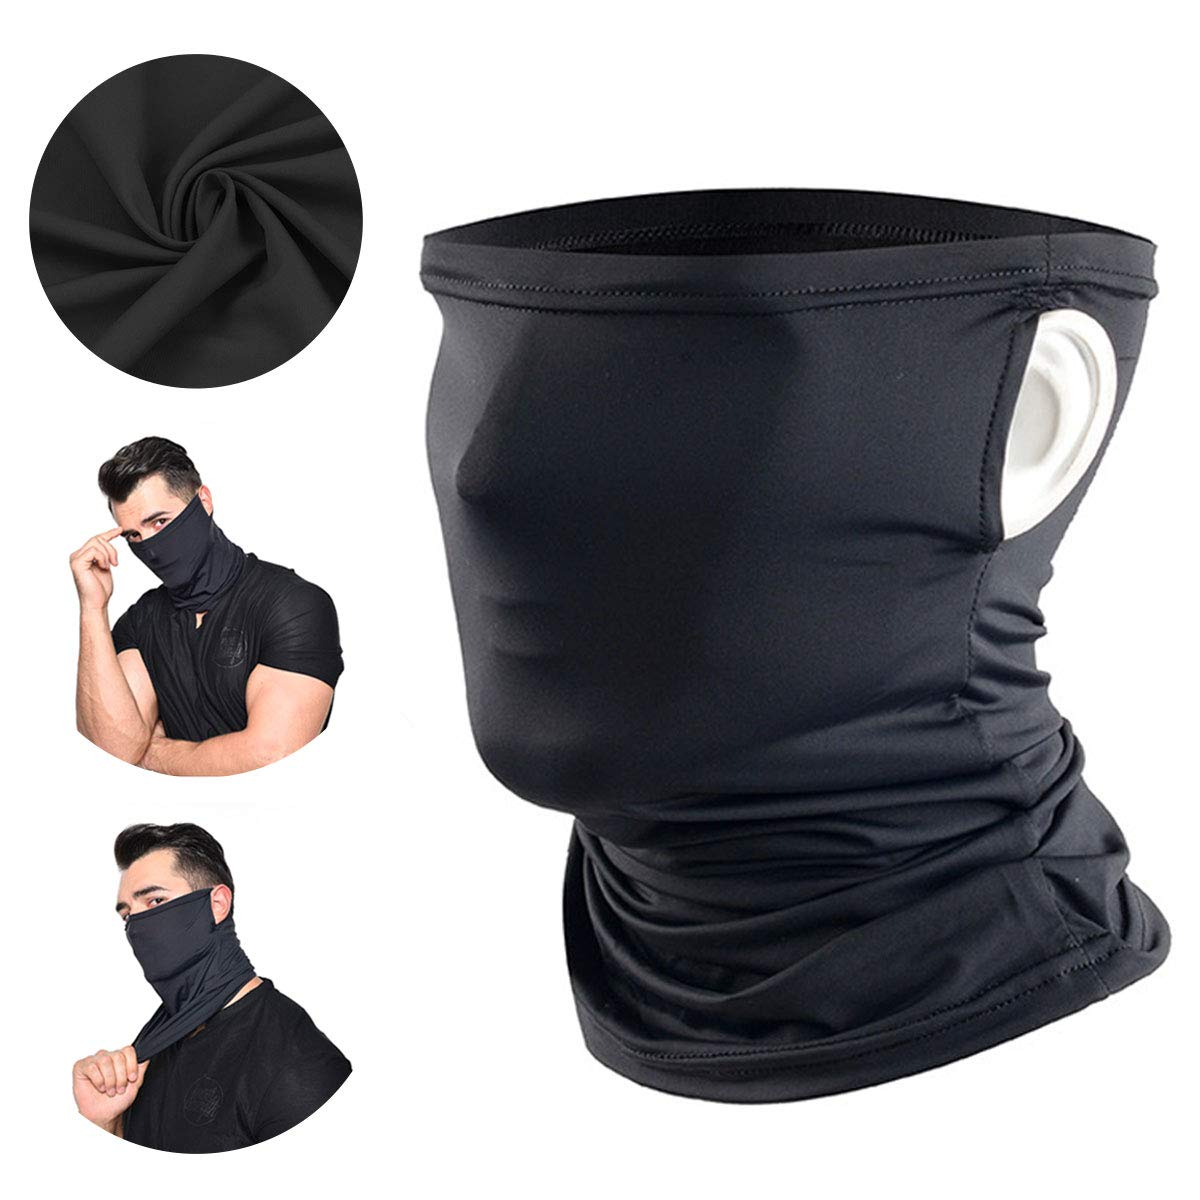 Neck Gaiter Balaclava Bandana Headwear Ice Silk Cooling Sports Face Scarf for Dust Outdoors